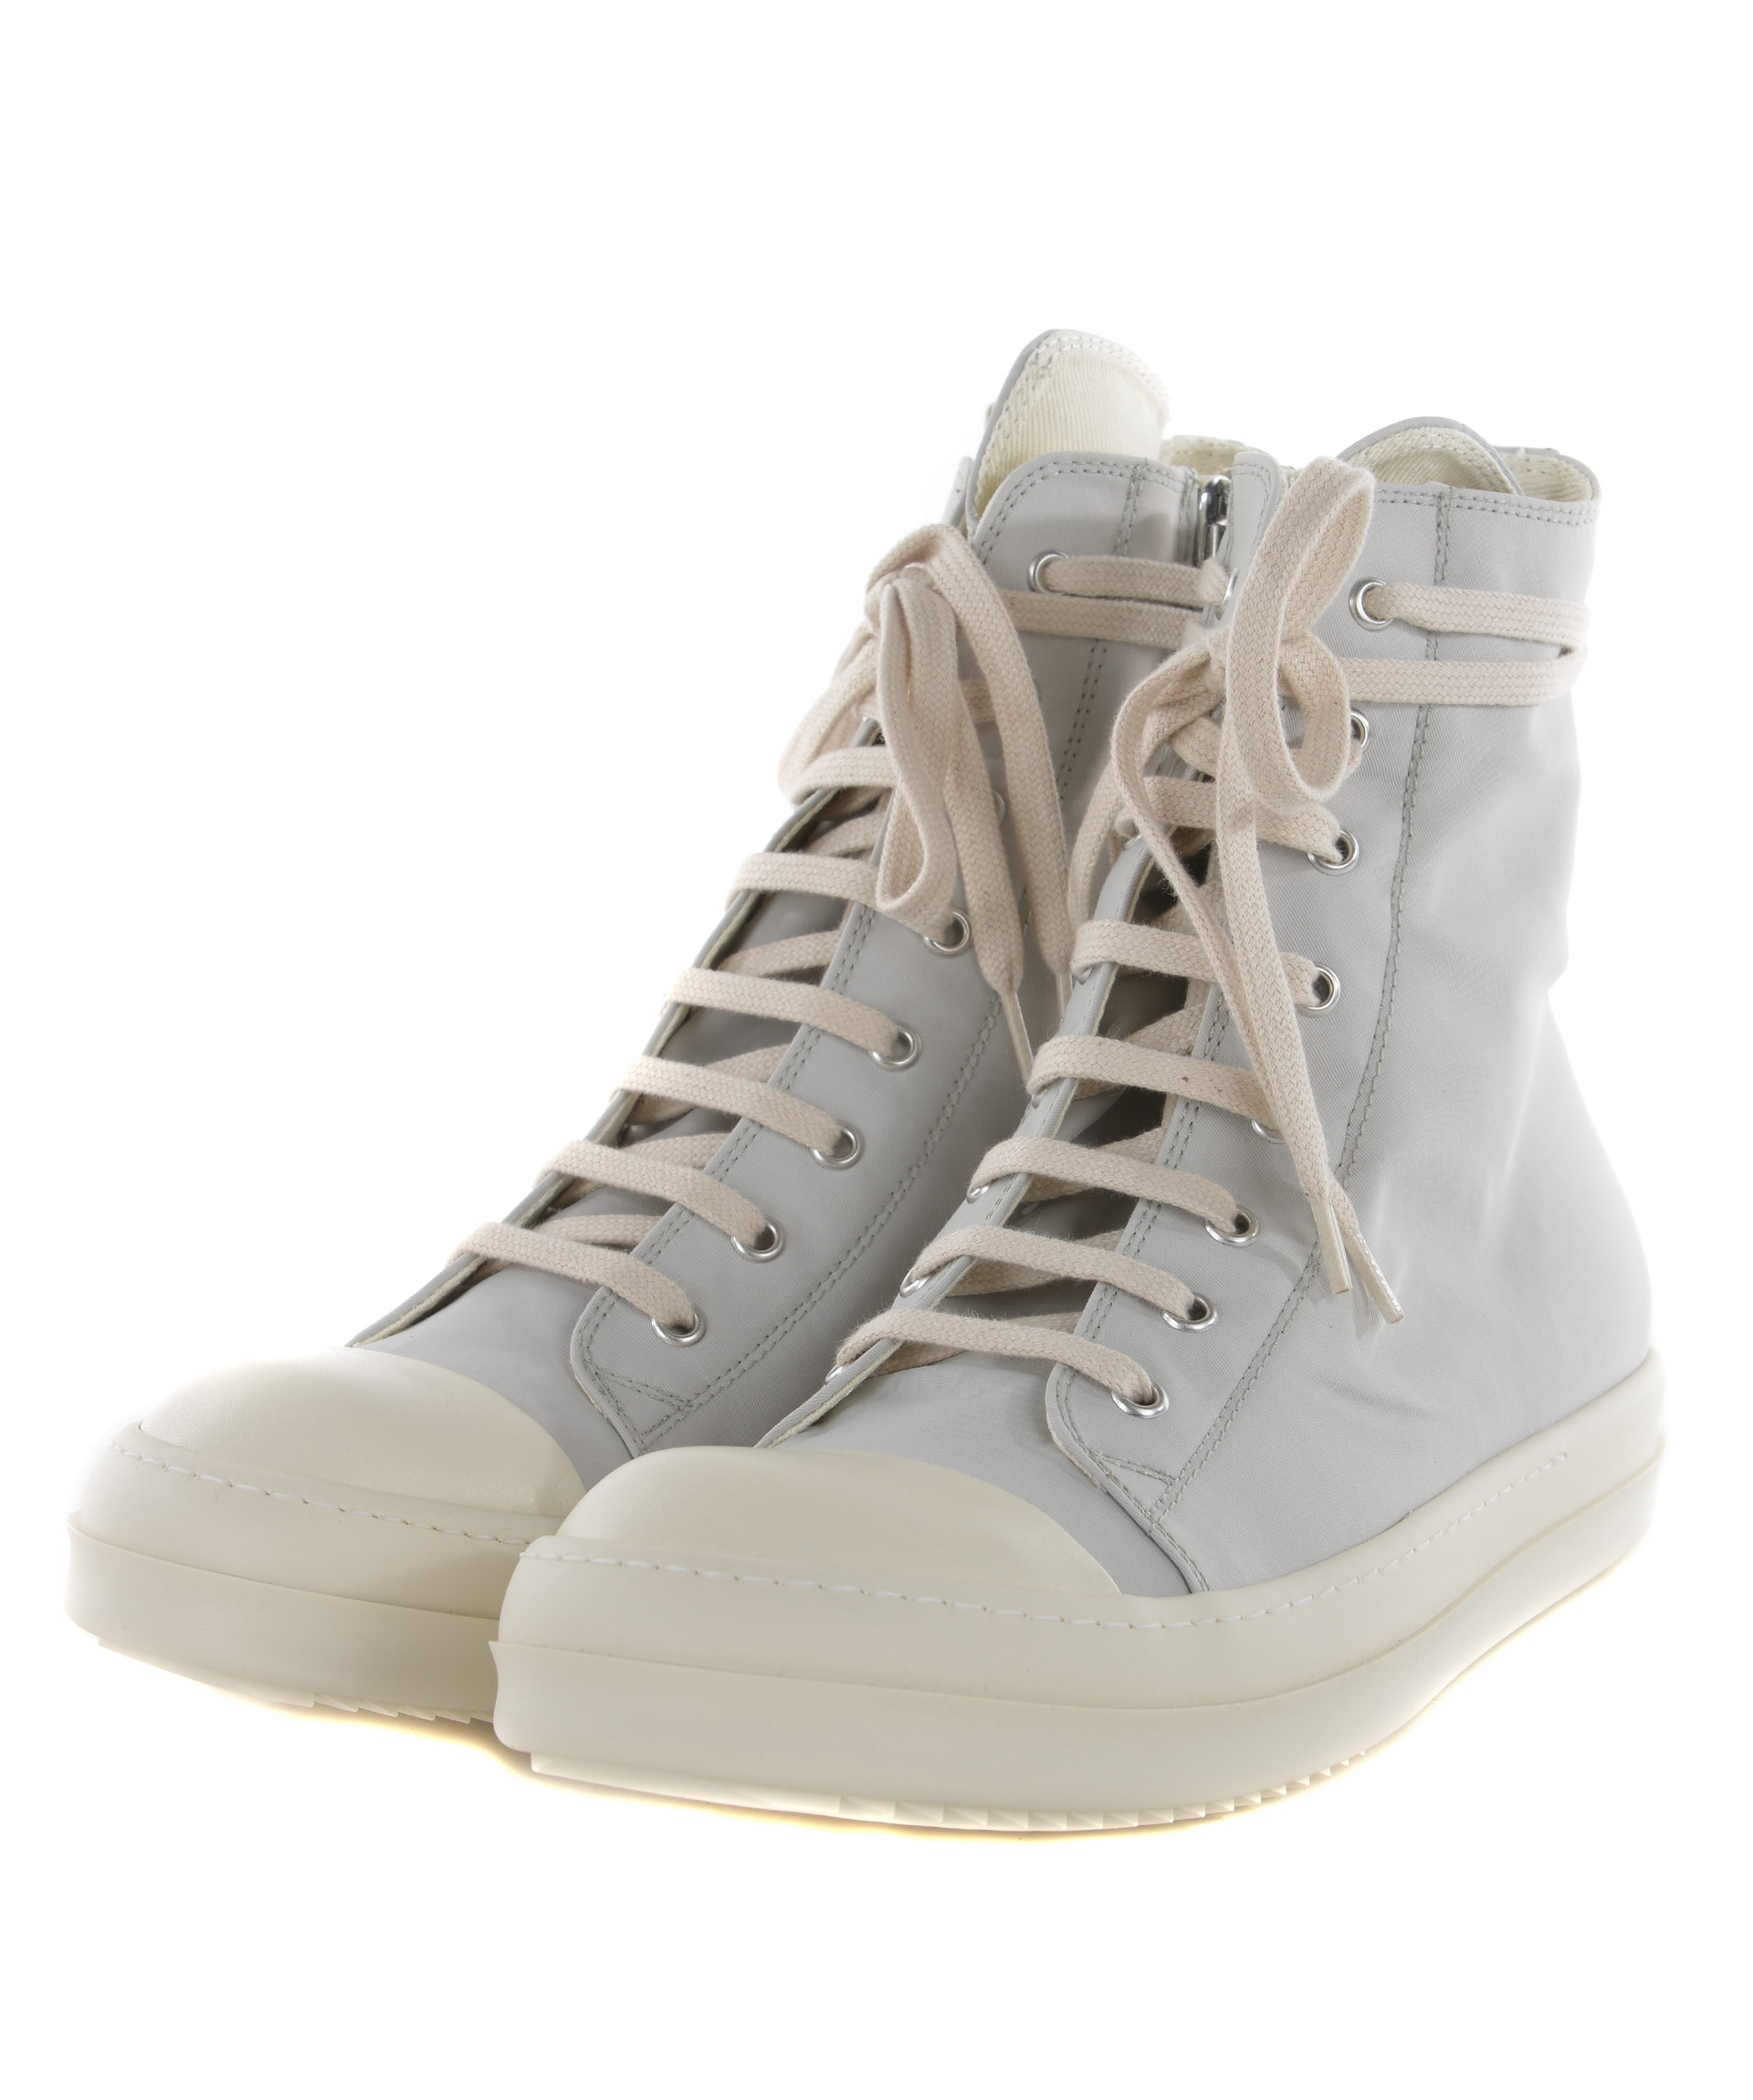 46636245a1a5 Sneakers uomo Rick Owens DRKSHDW RICK OWENS DRKSHDW - RICK OWENS ...